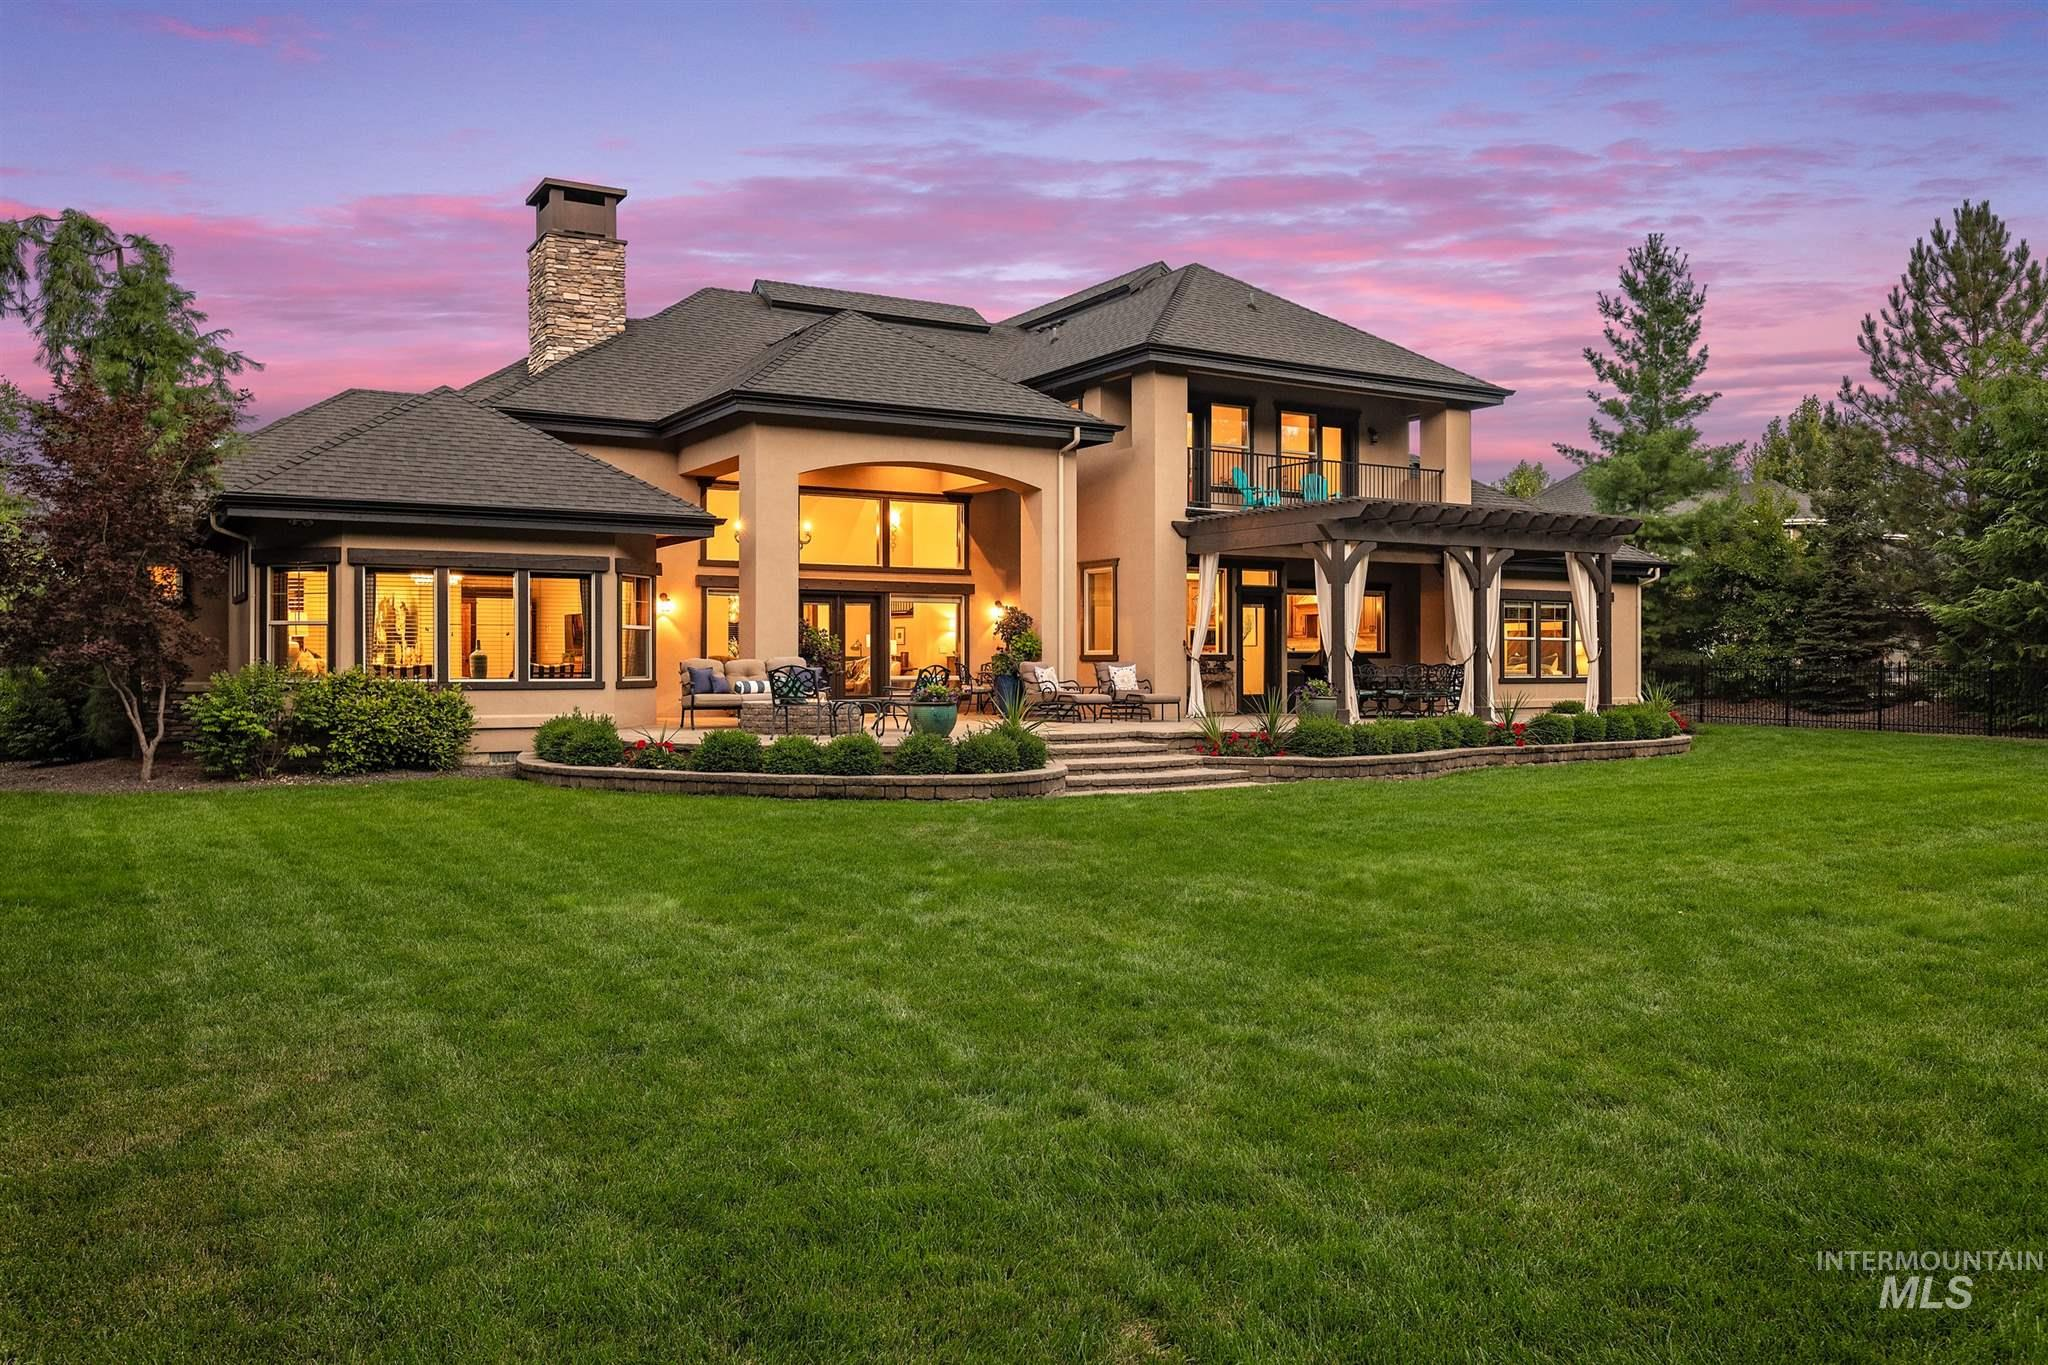 226 Riversedge Drive, Eagle, Idaho 83616, 4 Bedrooms, 4.5 Bathrooms, Residential For Sale, Price $1,550,000, 98776603